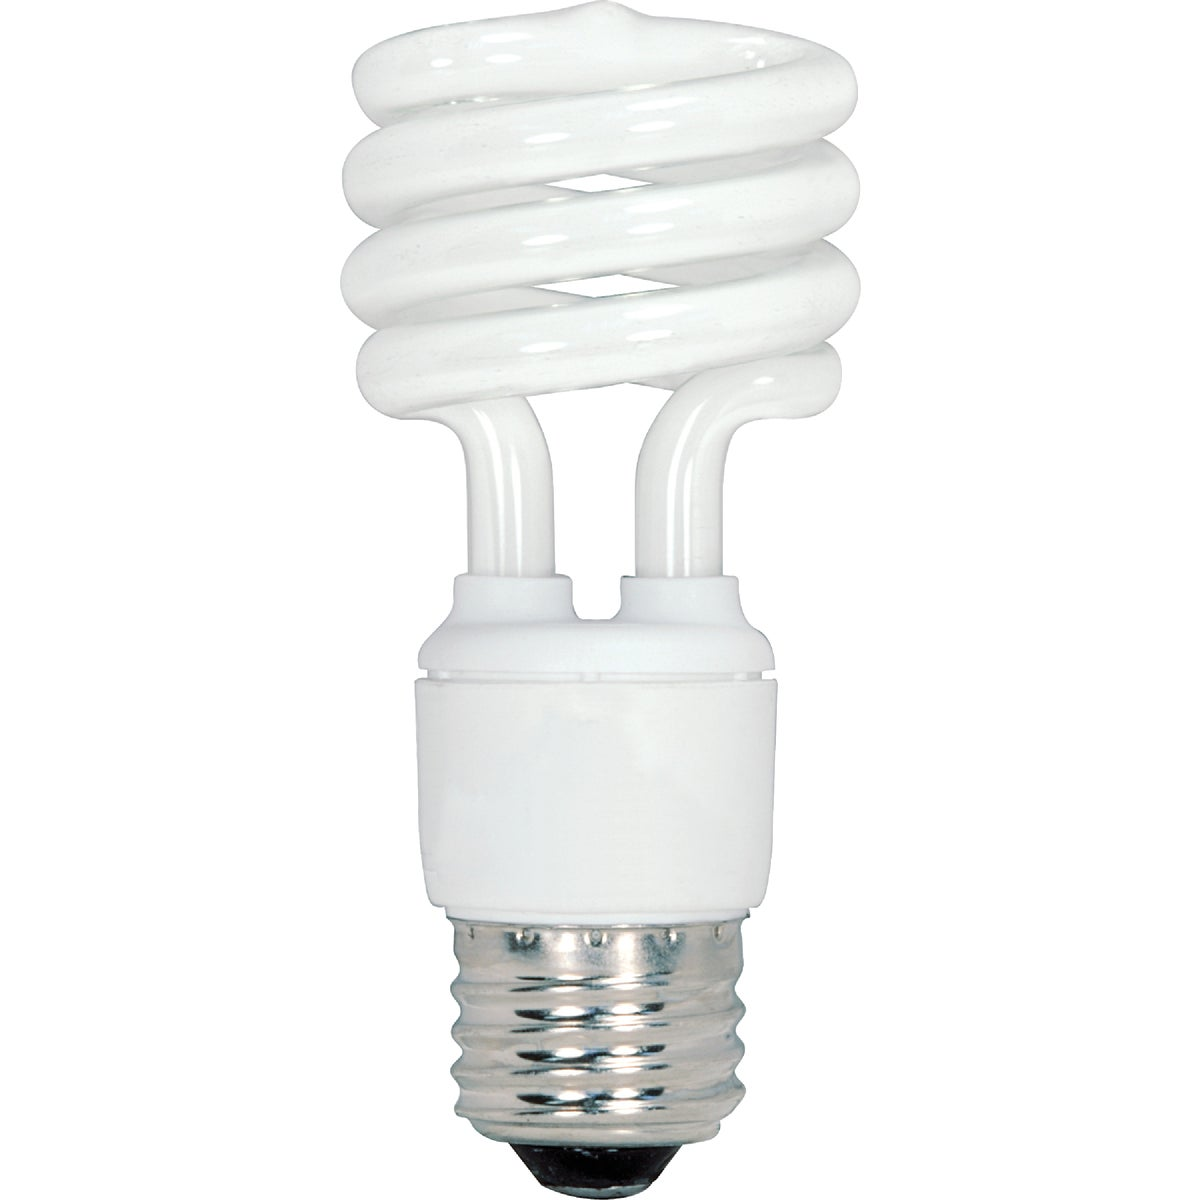 5PK 13W CFL BULB - 85939 by G E Lighting